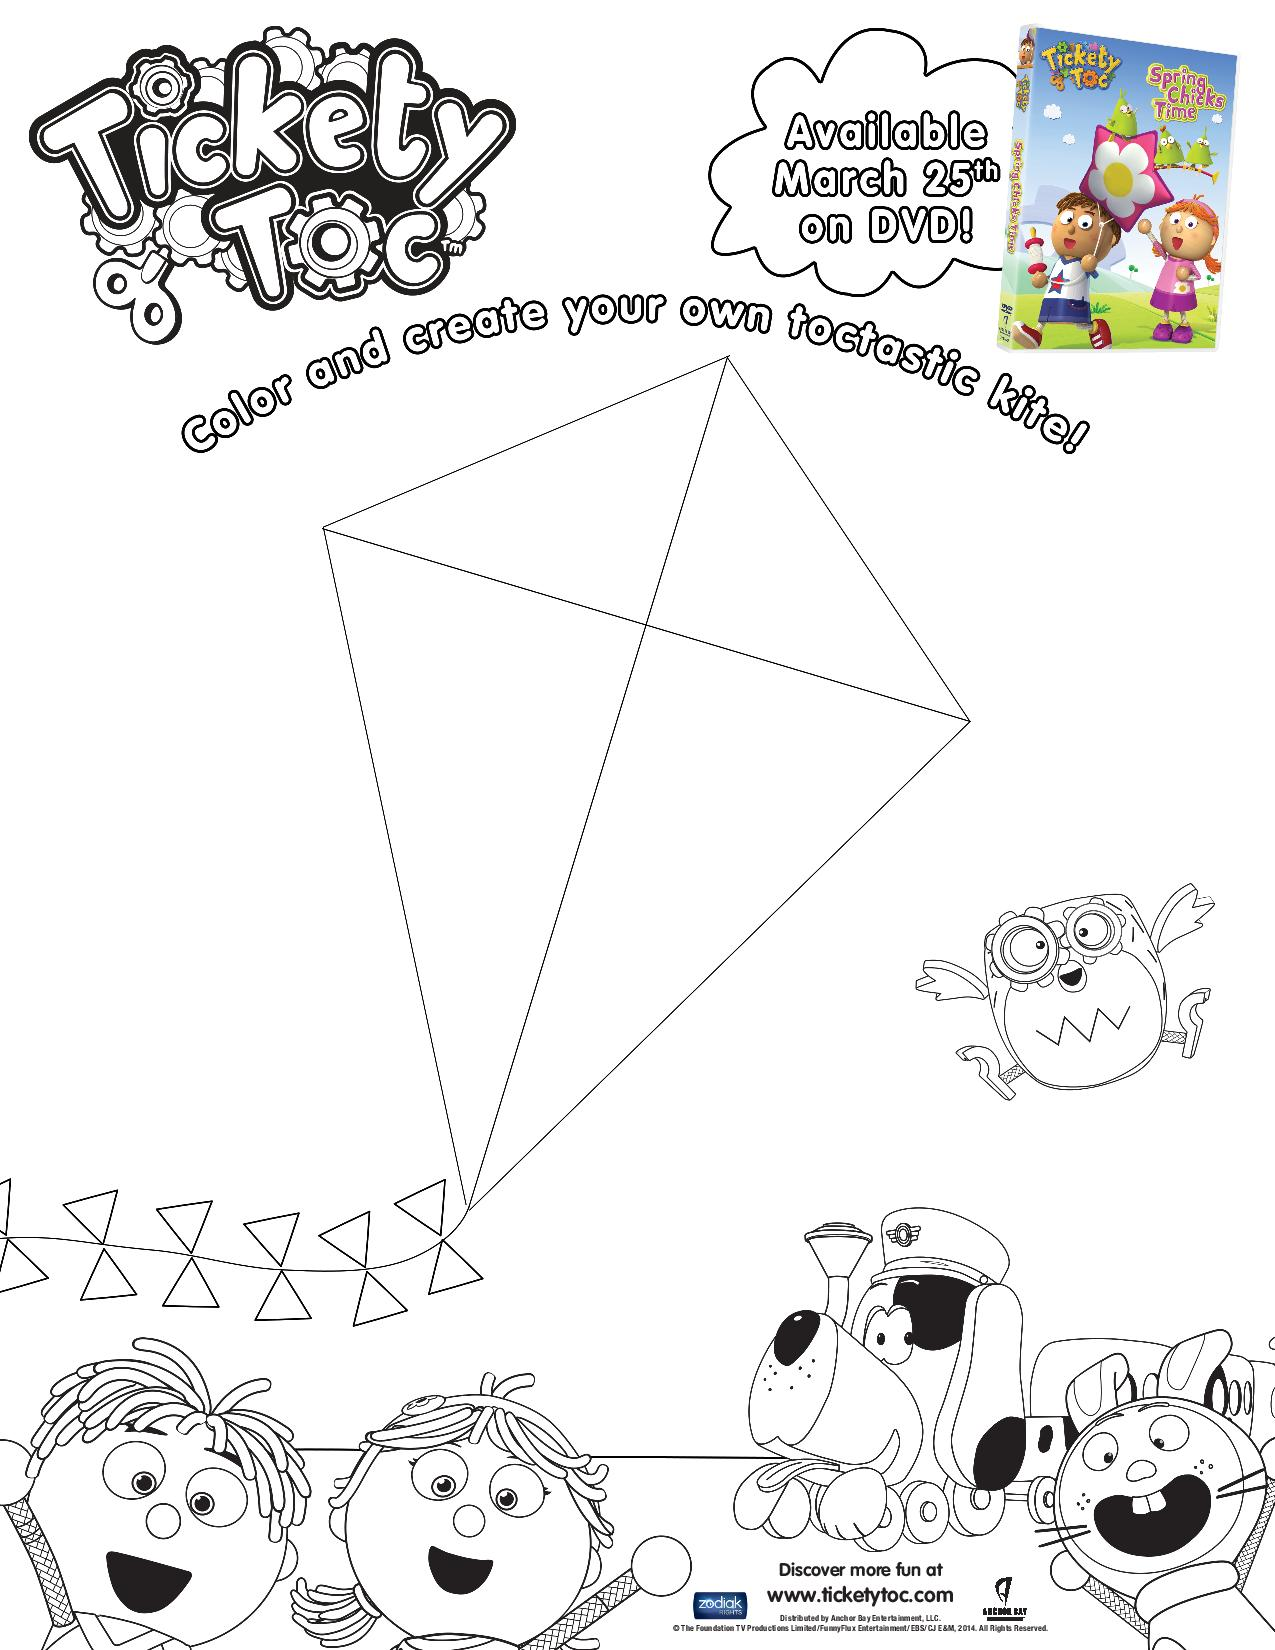 Tickety Toc Design Your Own Kite Coloring